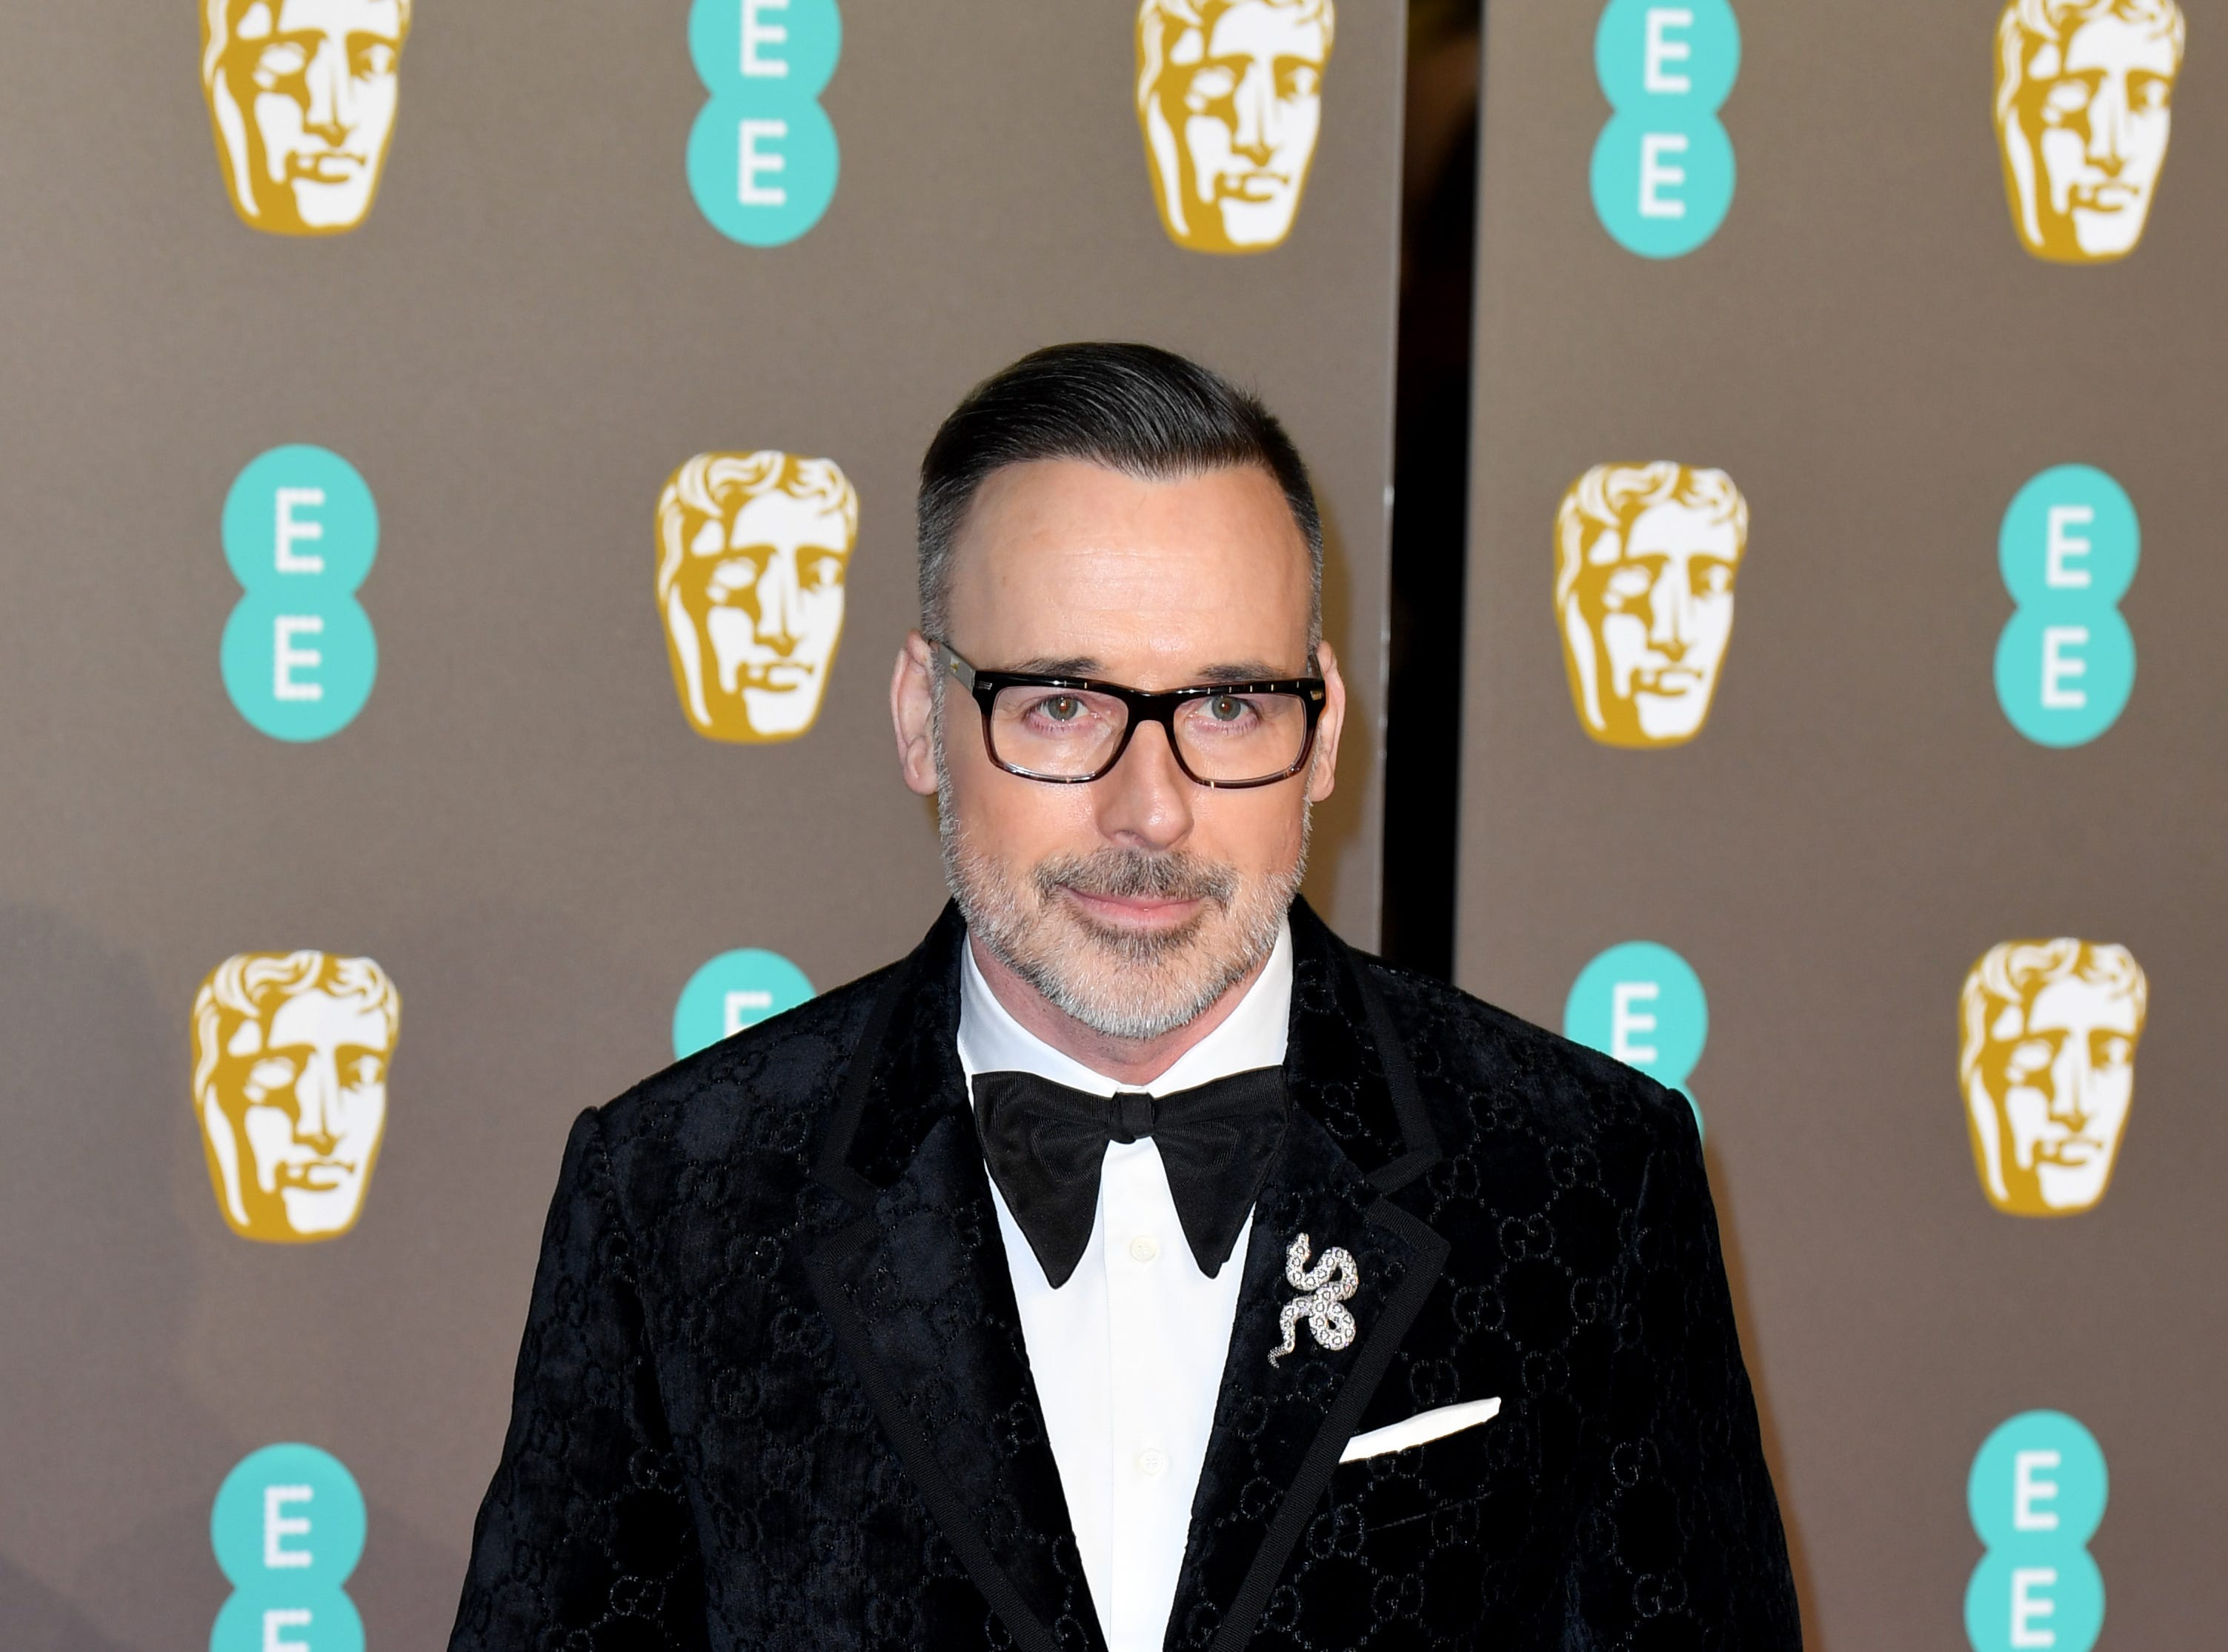 LONDON, ENGLAND - FEBRUARY 10:  David Furnish attends the EE British Academy Film Awards at Royal Albert Hall on February 10, 2019 in London, England. (Photo by Pascal Le Segretain/Getty Images) ORG XMIT: 775293544 ORIG FILE ID: 1128725591